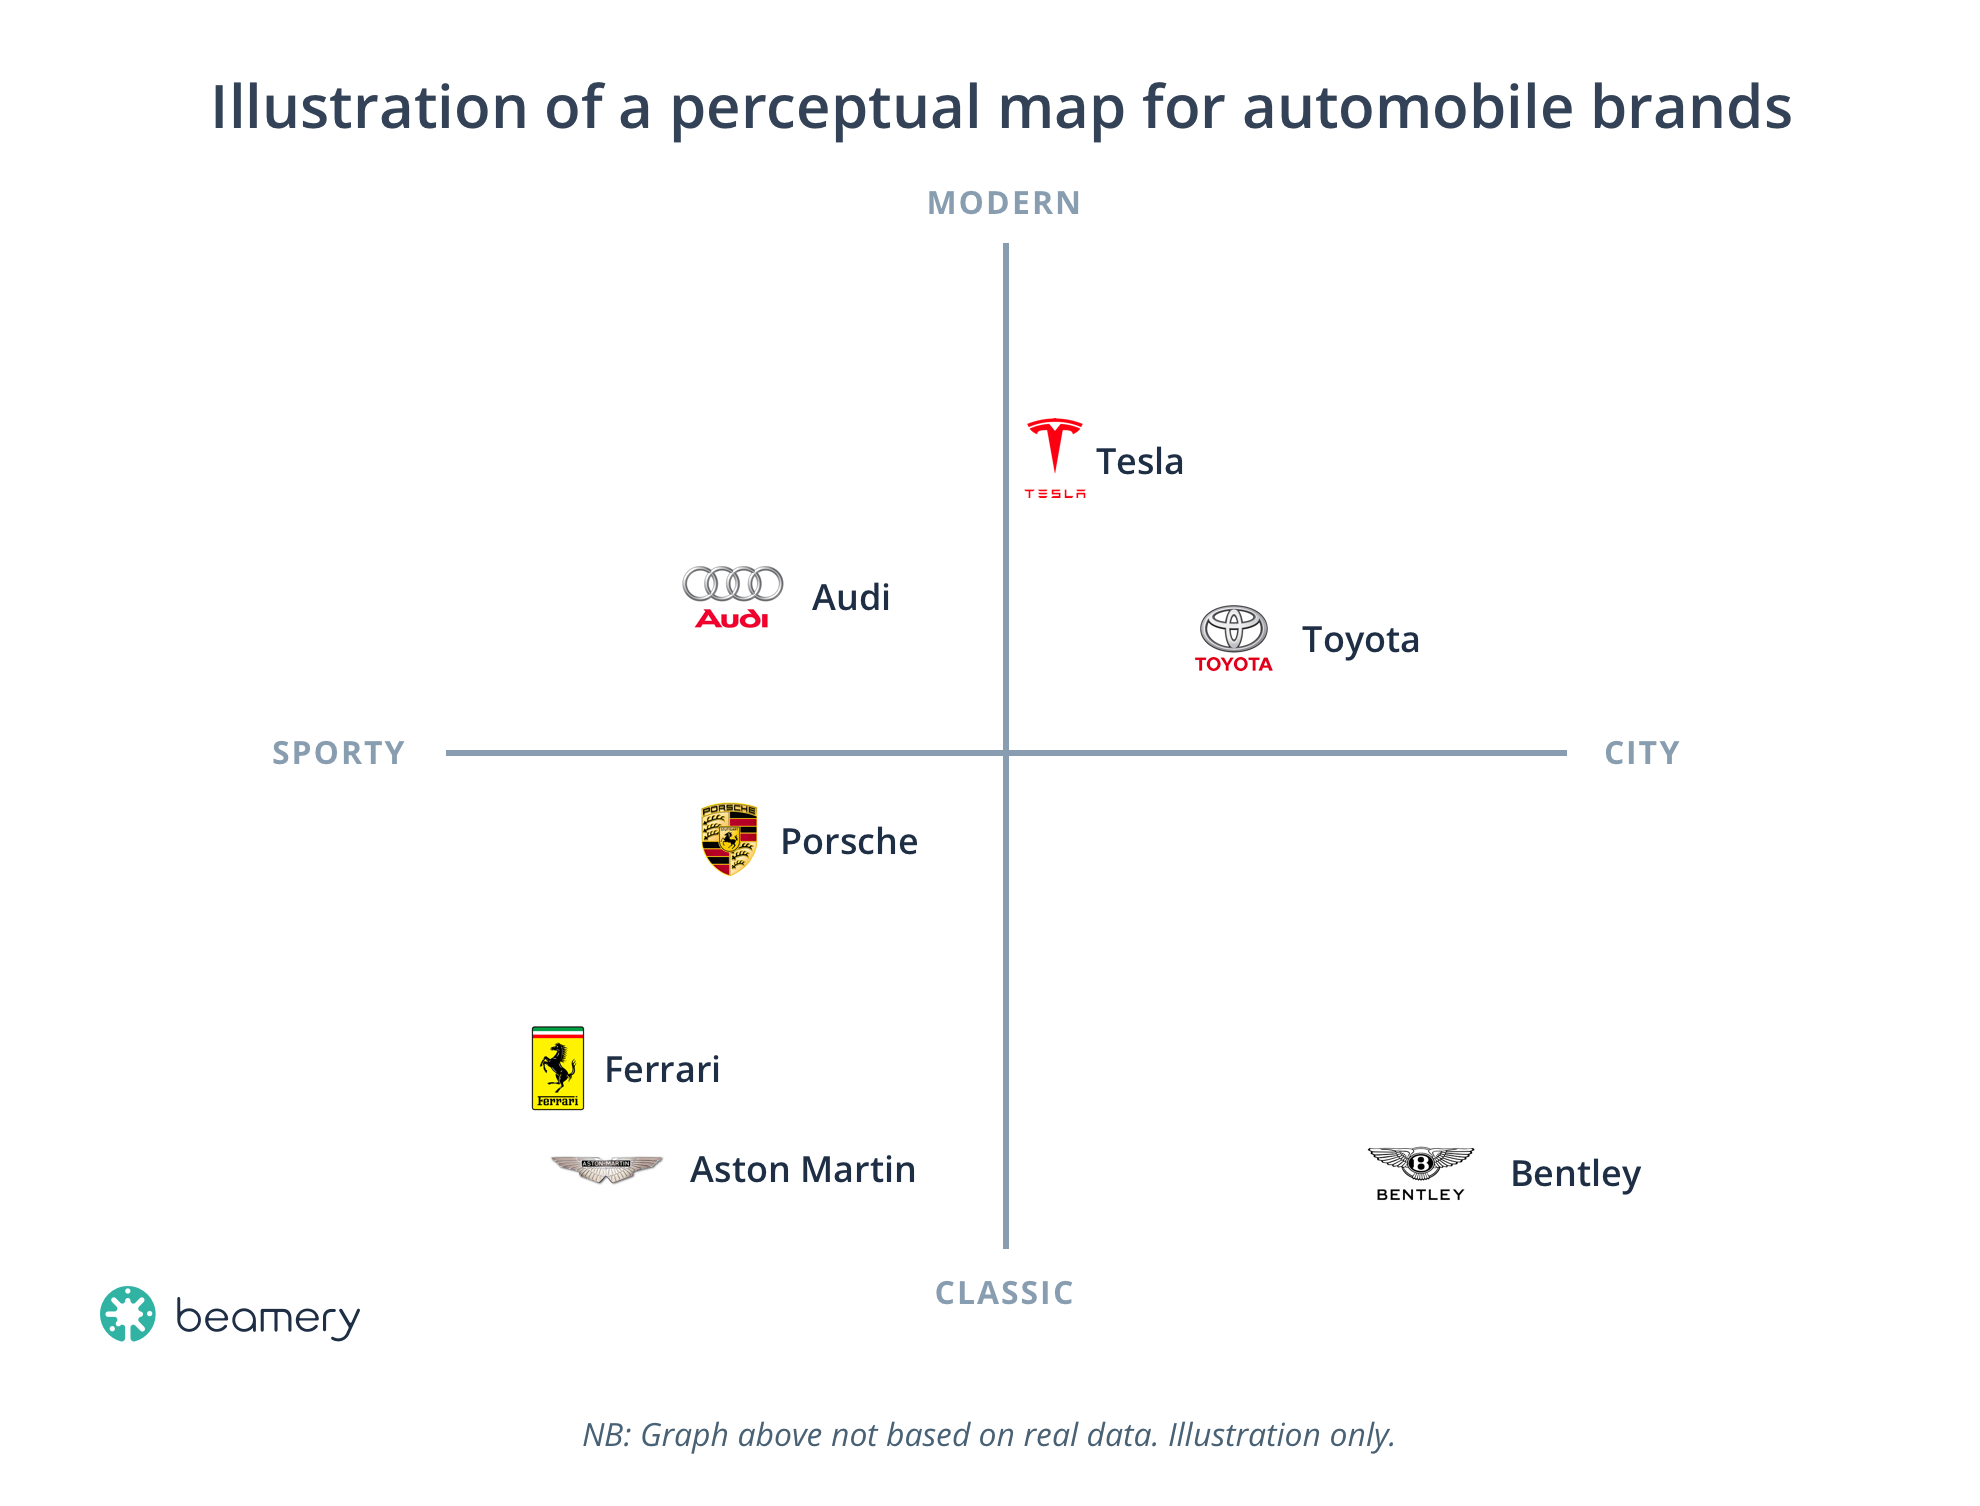 Illustration-of-a-perceptual-map-for-automobile-brands